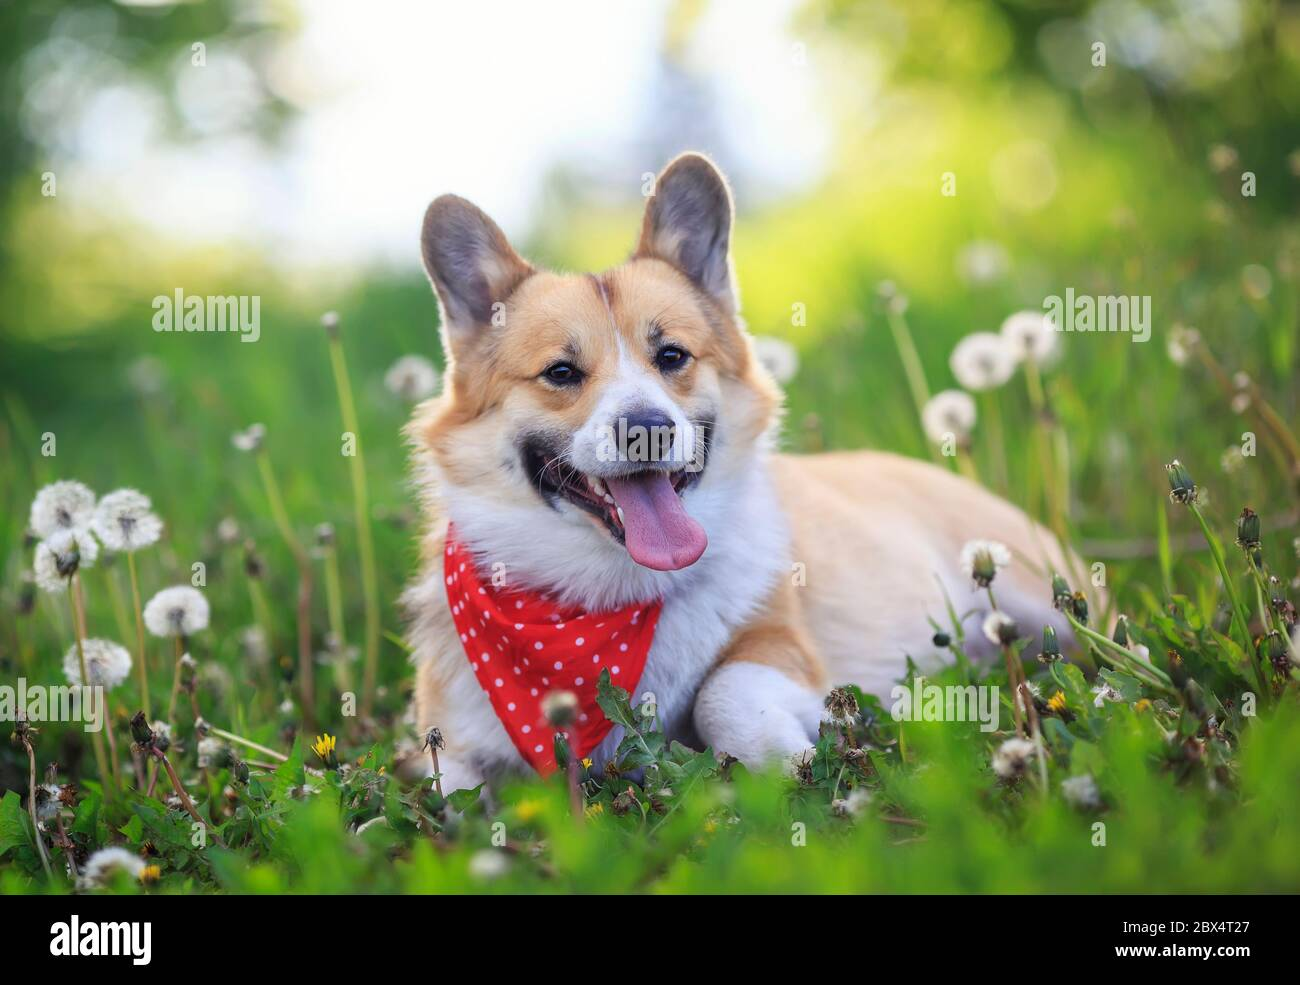 Cute Funny Corgi Dog Puppy Lies On A Blooming Meadow With White Fluffy Dandelions With Their Tongues Hanging Out Stock Photo Alamy